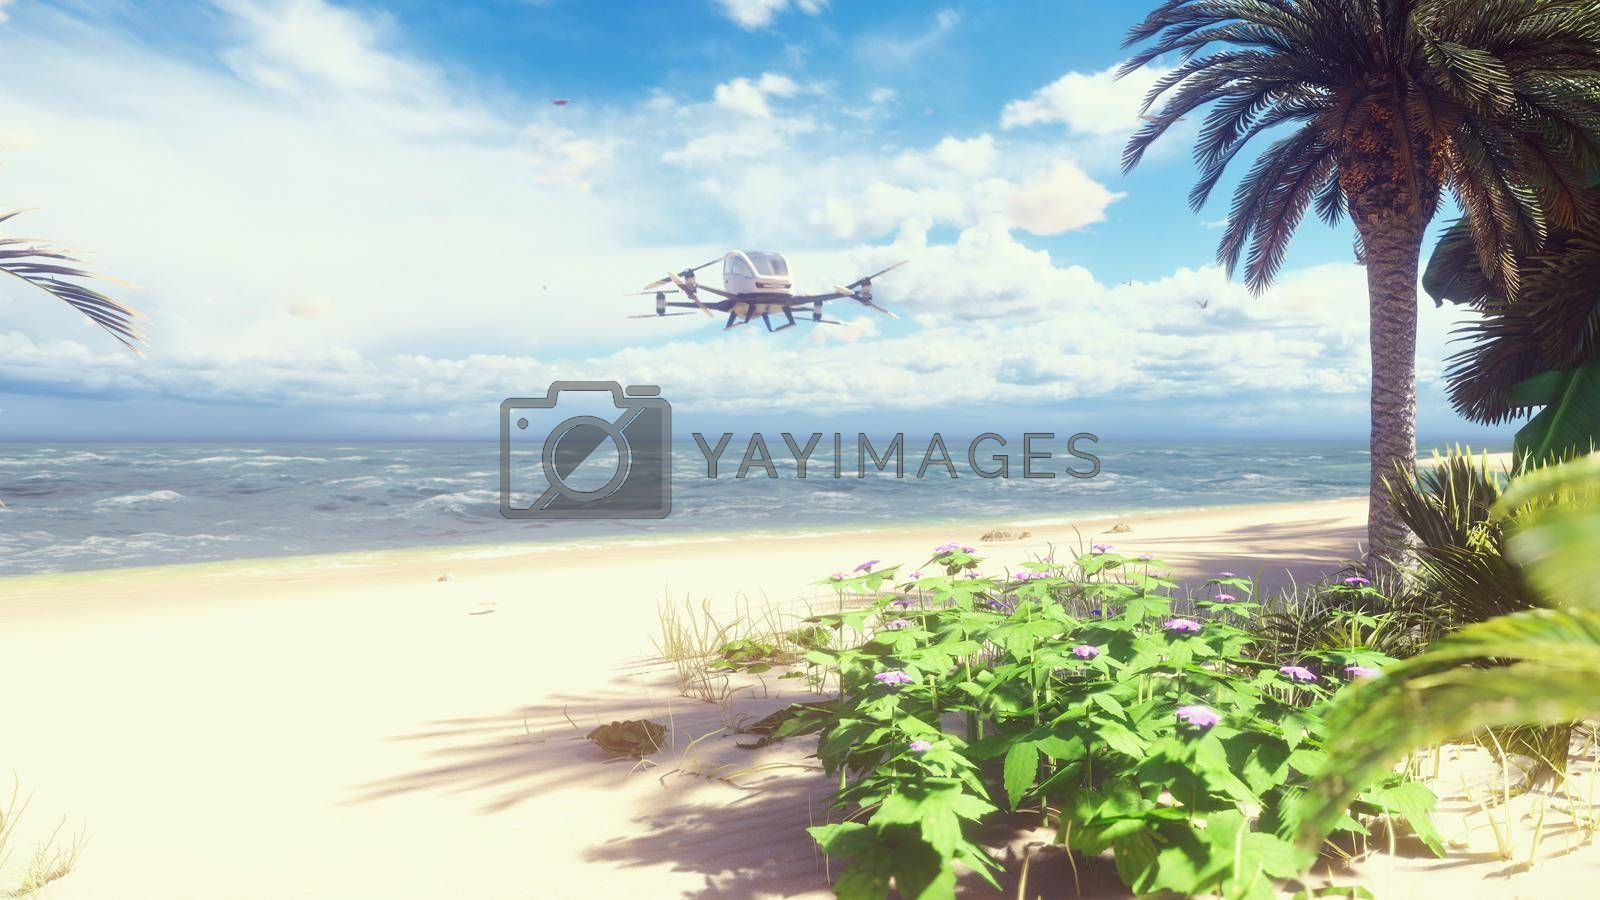 An unmanned passenger air taxi lands on a tropical beach. The concept of the future driverless taxi.